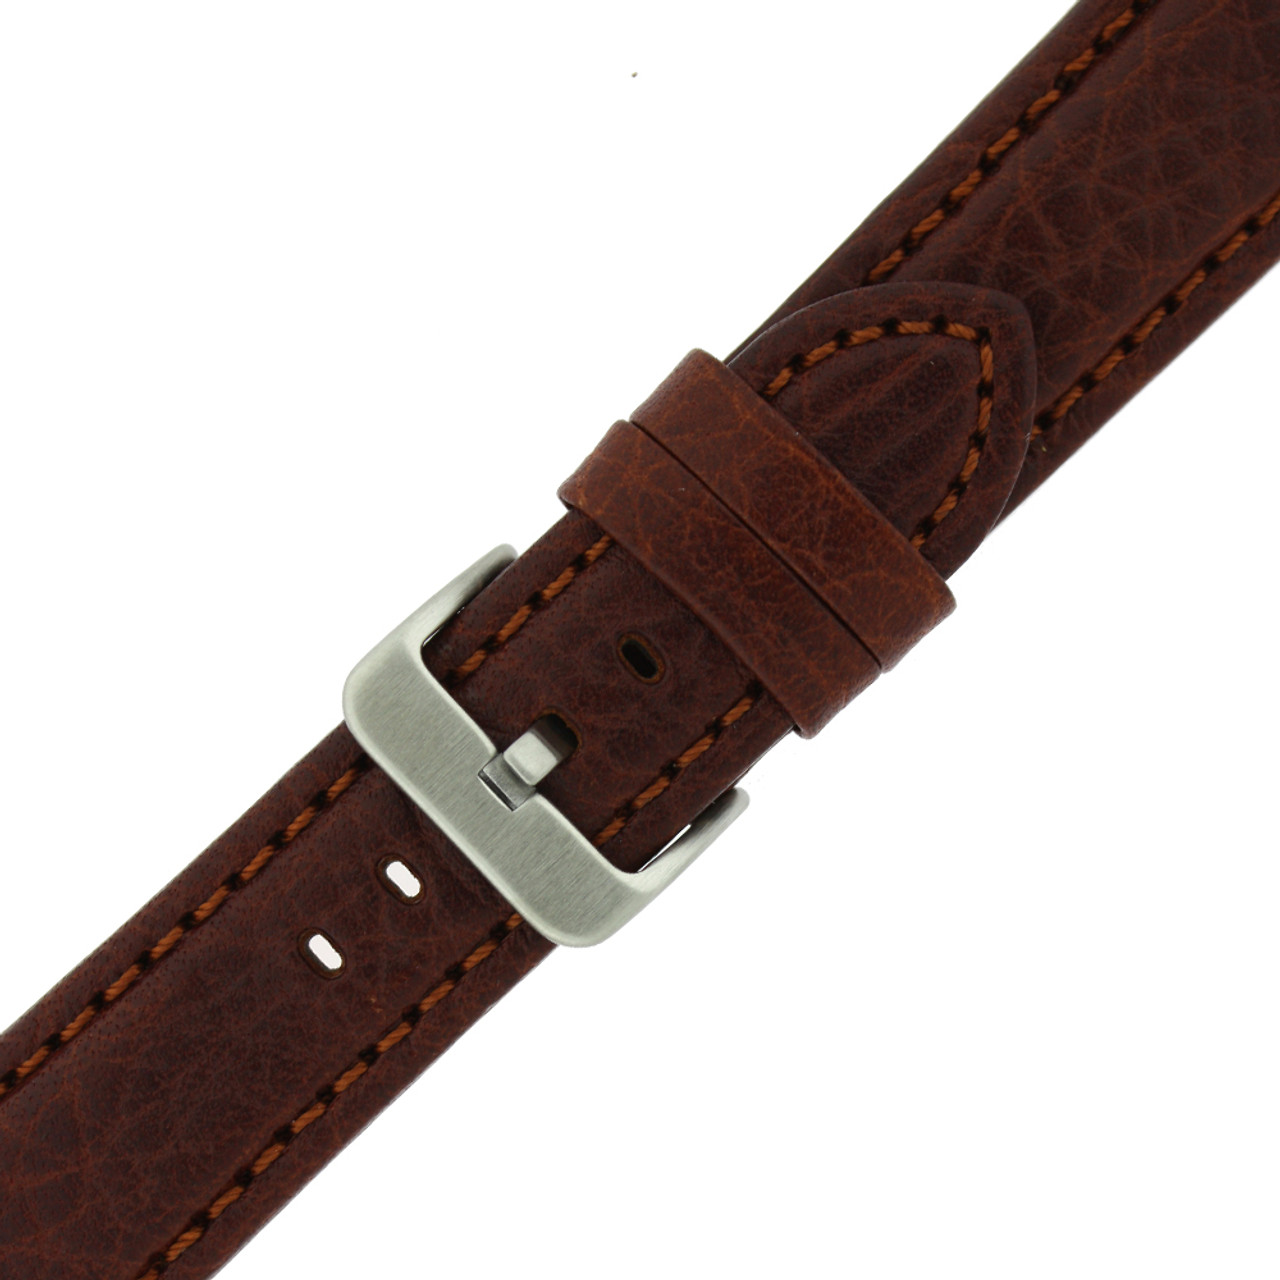 Genuine Leather Watch Band with Padding in Honey Brown - Buckle View